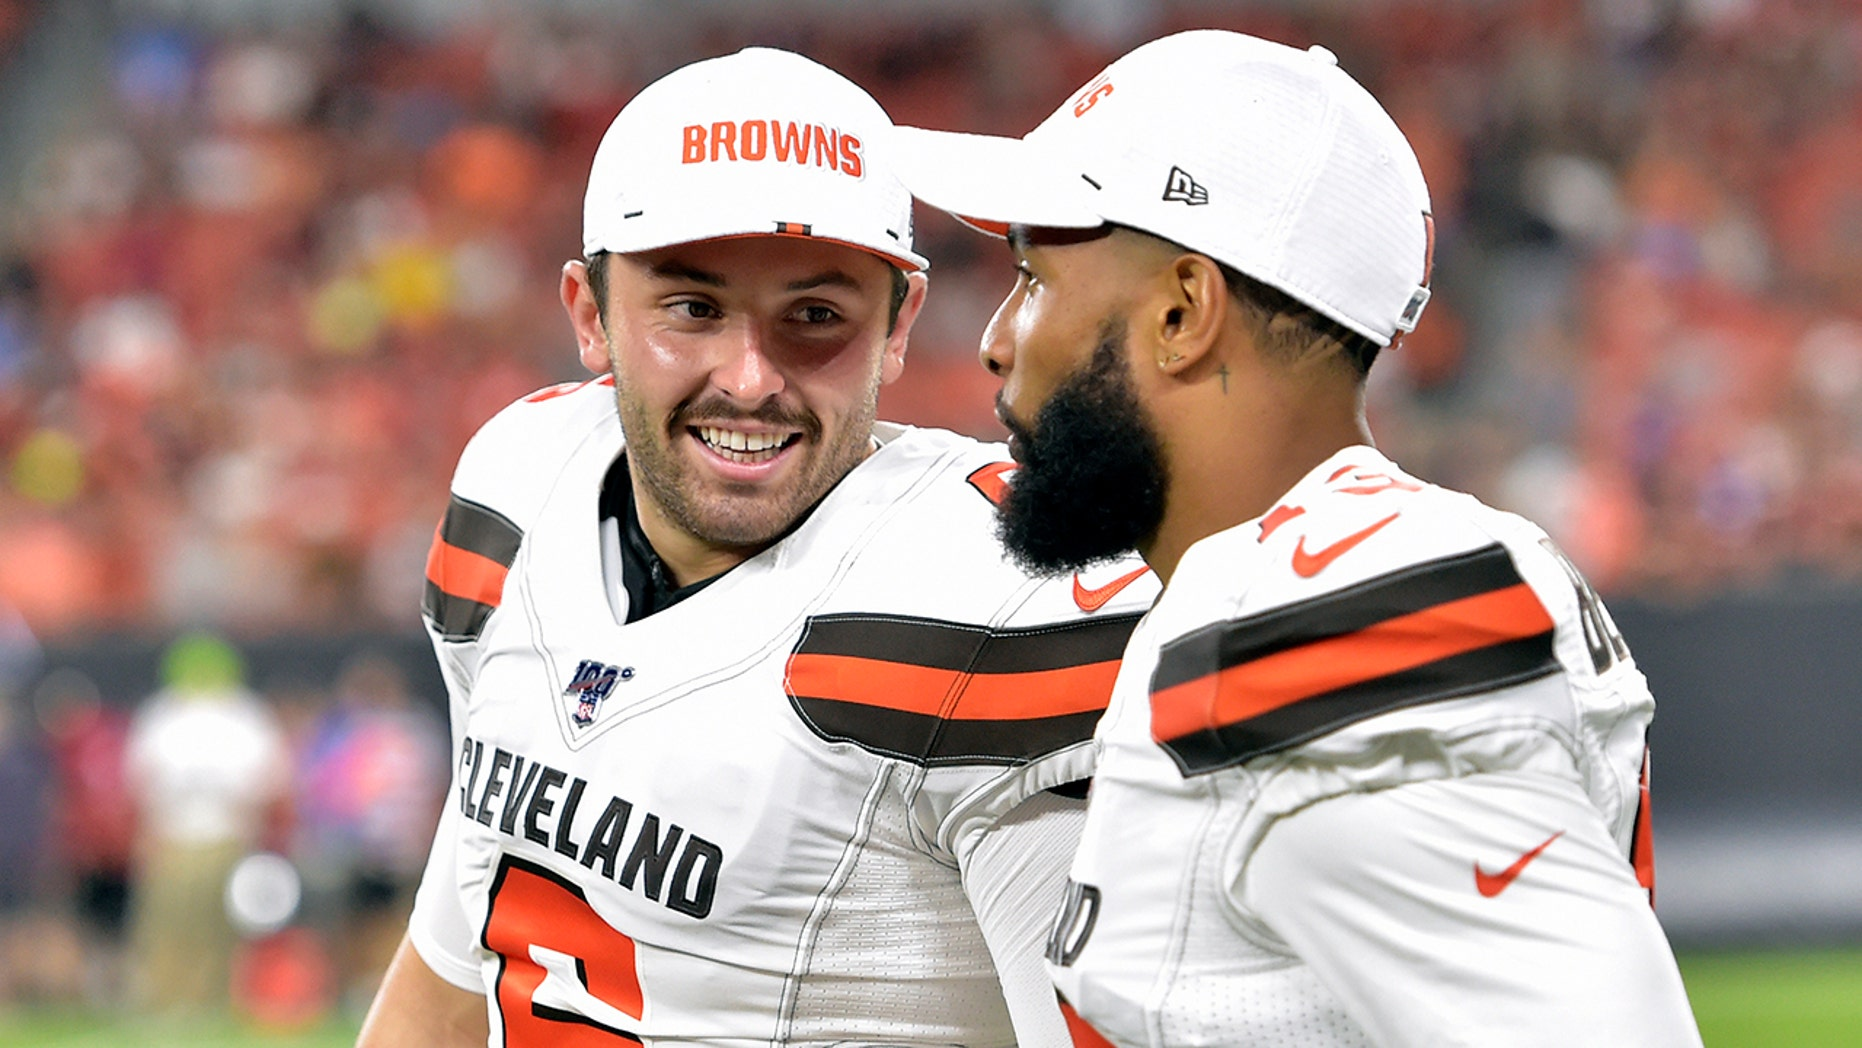 FILE - In this Aug. 8, 2019, file photo, Cleveland Browns' Baker Mayfield, left, smiles as he talks with wide receiver Odell Beckham Jr. during the second half of an NFL preseason football game against the Washington Redskins in Cleveland. Mayfield isn't concerned about the huge expectations being placed on the Browns, who went 7-8-1 during his rookie season but upgraded their roster and should compete for their first playoff spot since 2002. (AP Photo/David Richard, File)